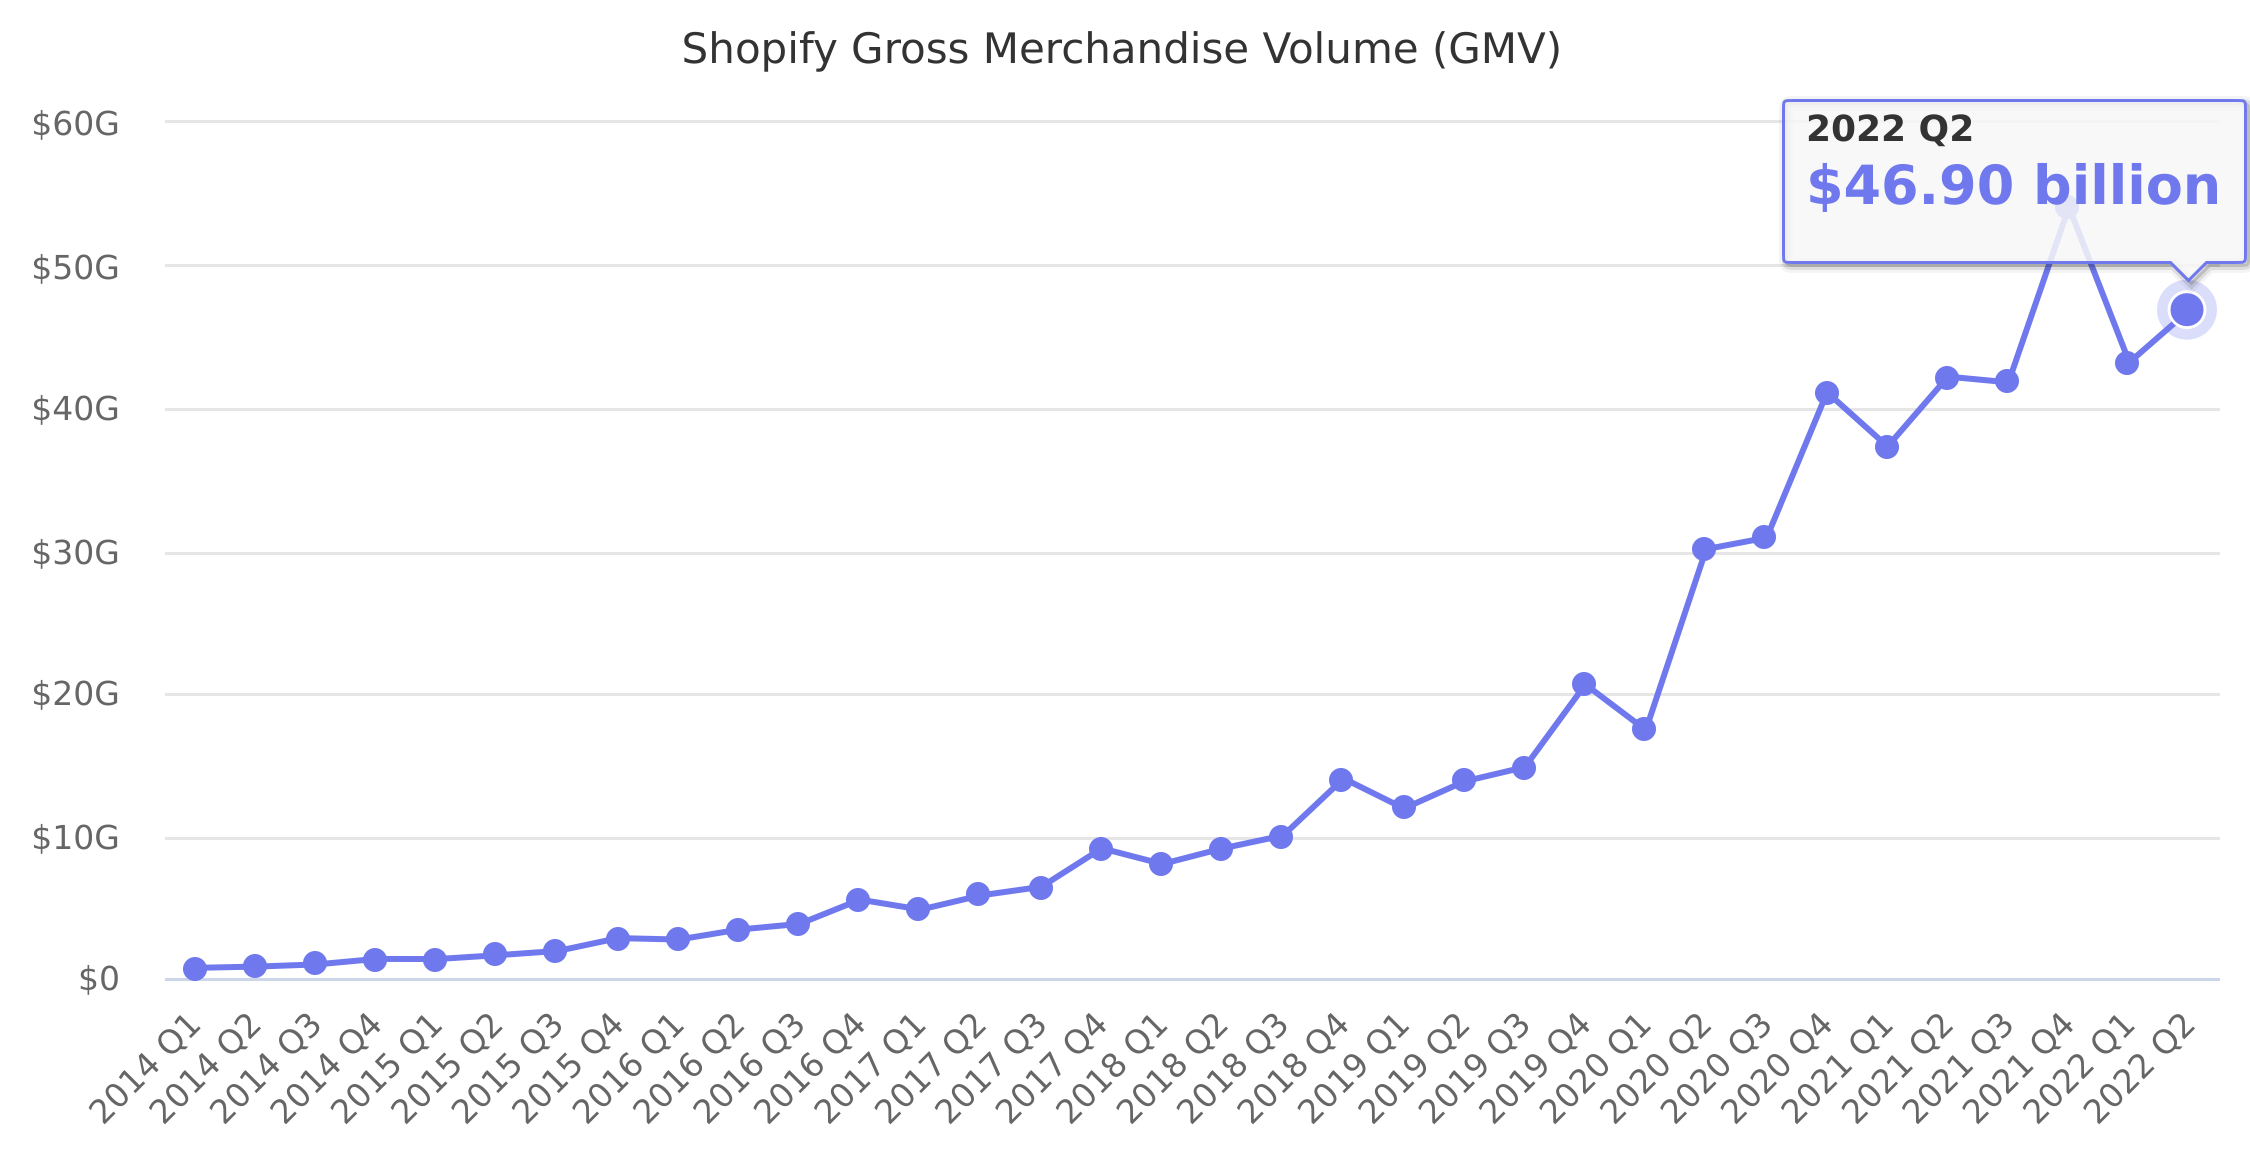 Shopify Gross Merchandise Volume (GMV) 2014-2019